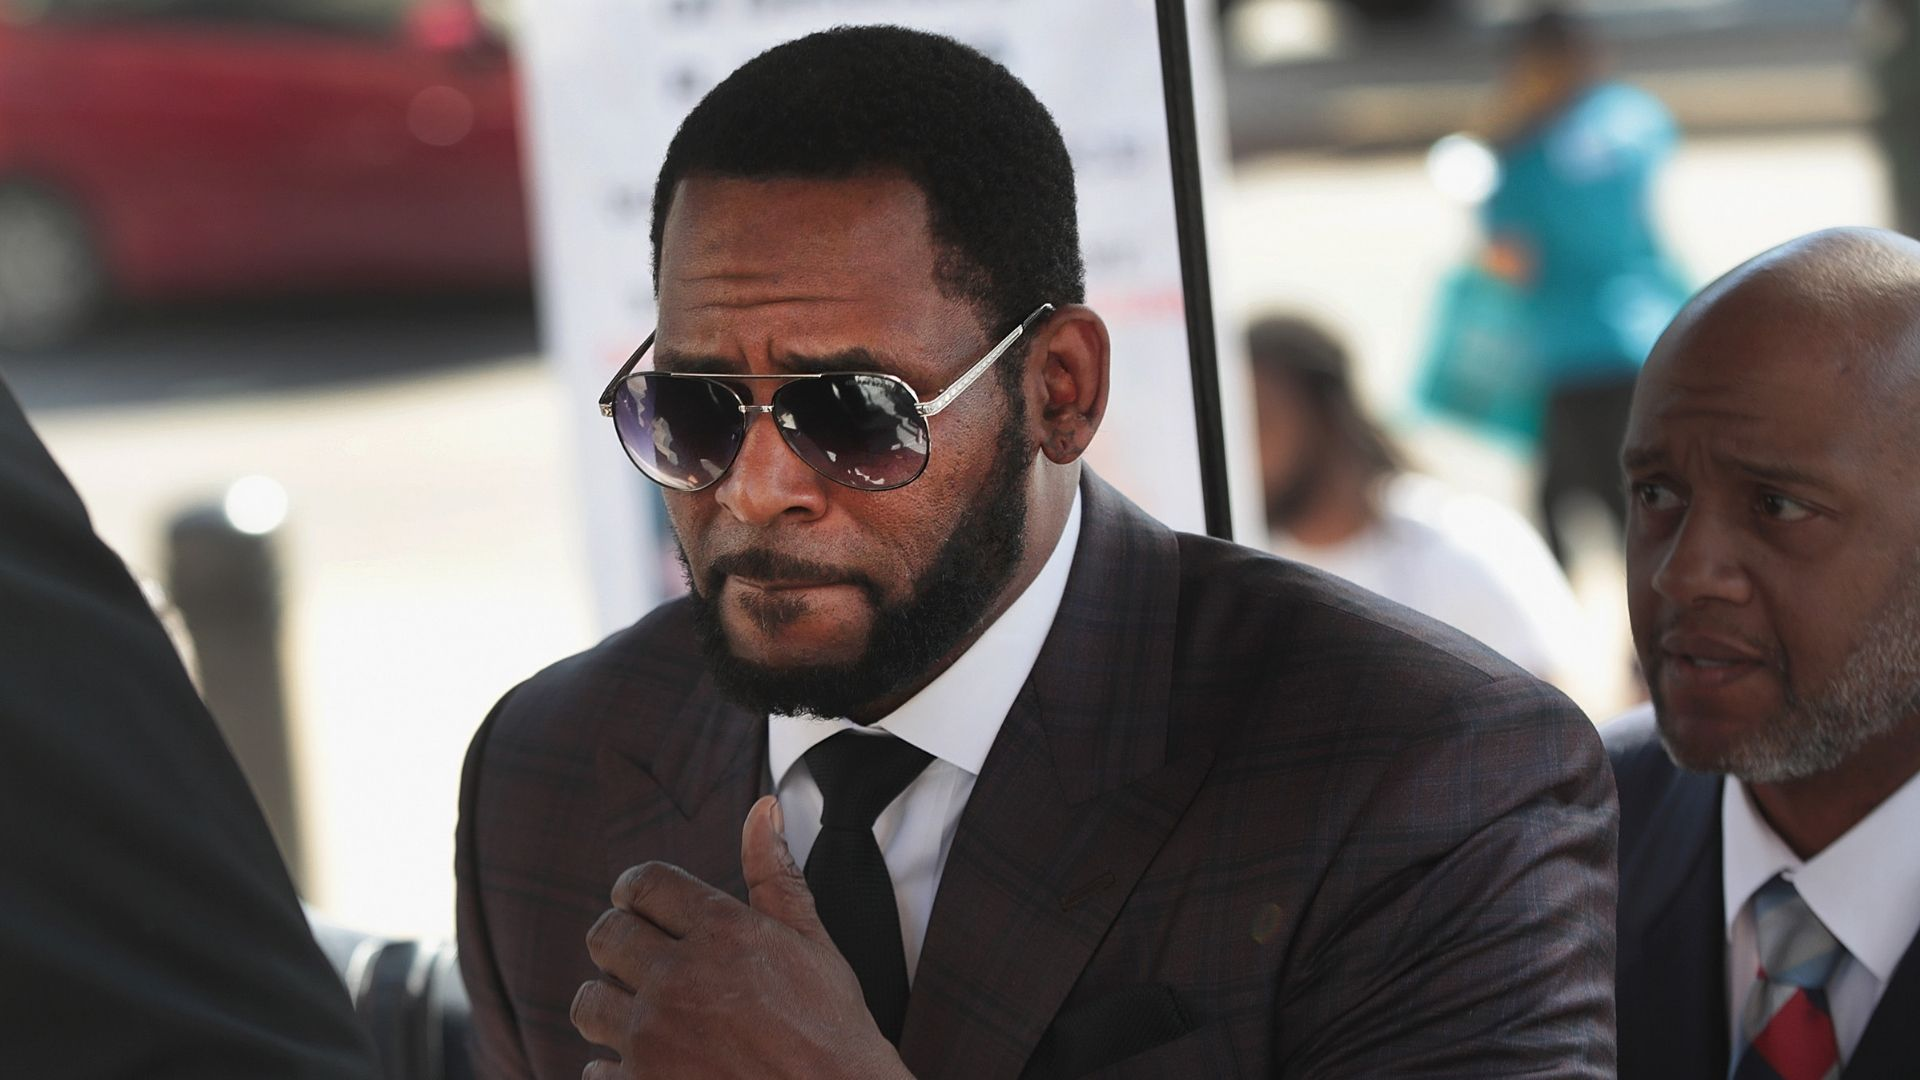 Judge orders R. Kelly moved to New York for courthearing